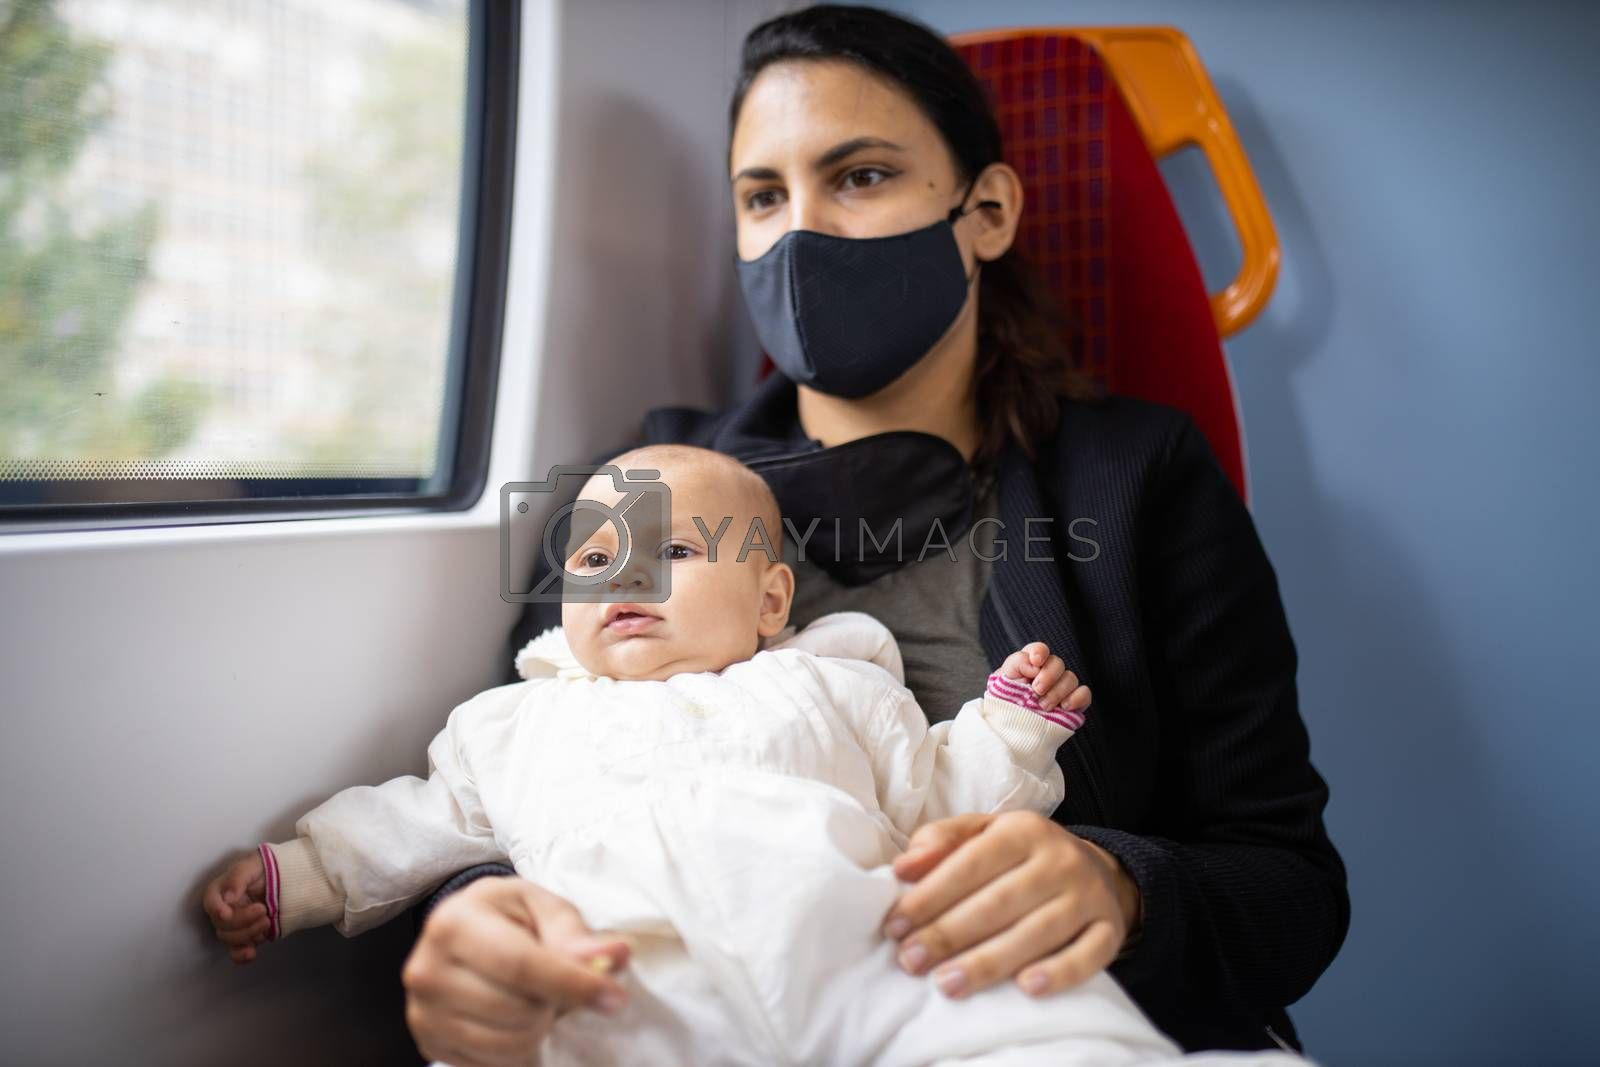 Woman wearing a black face mask sitting next to a window in a bus and holding her distracted-looking baby daughter